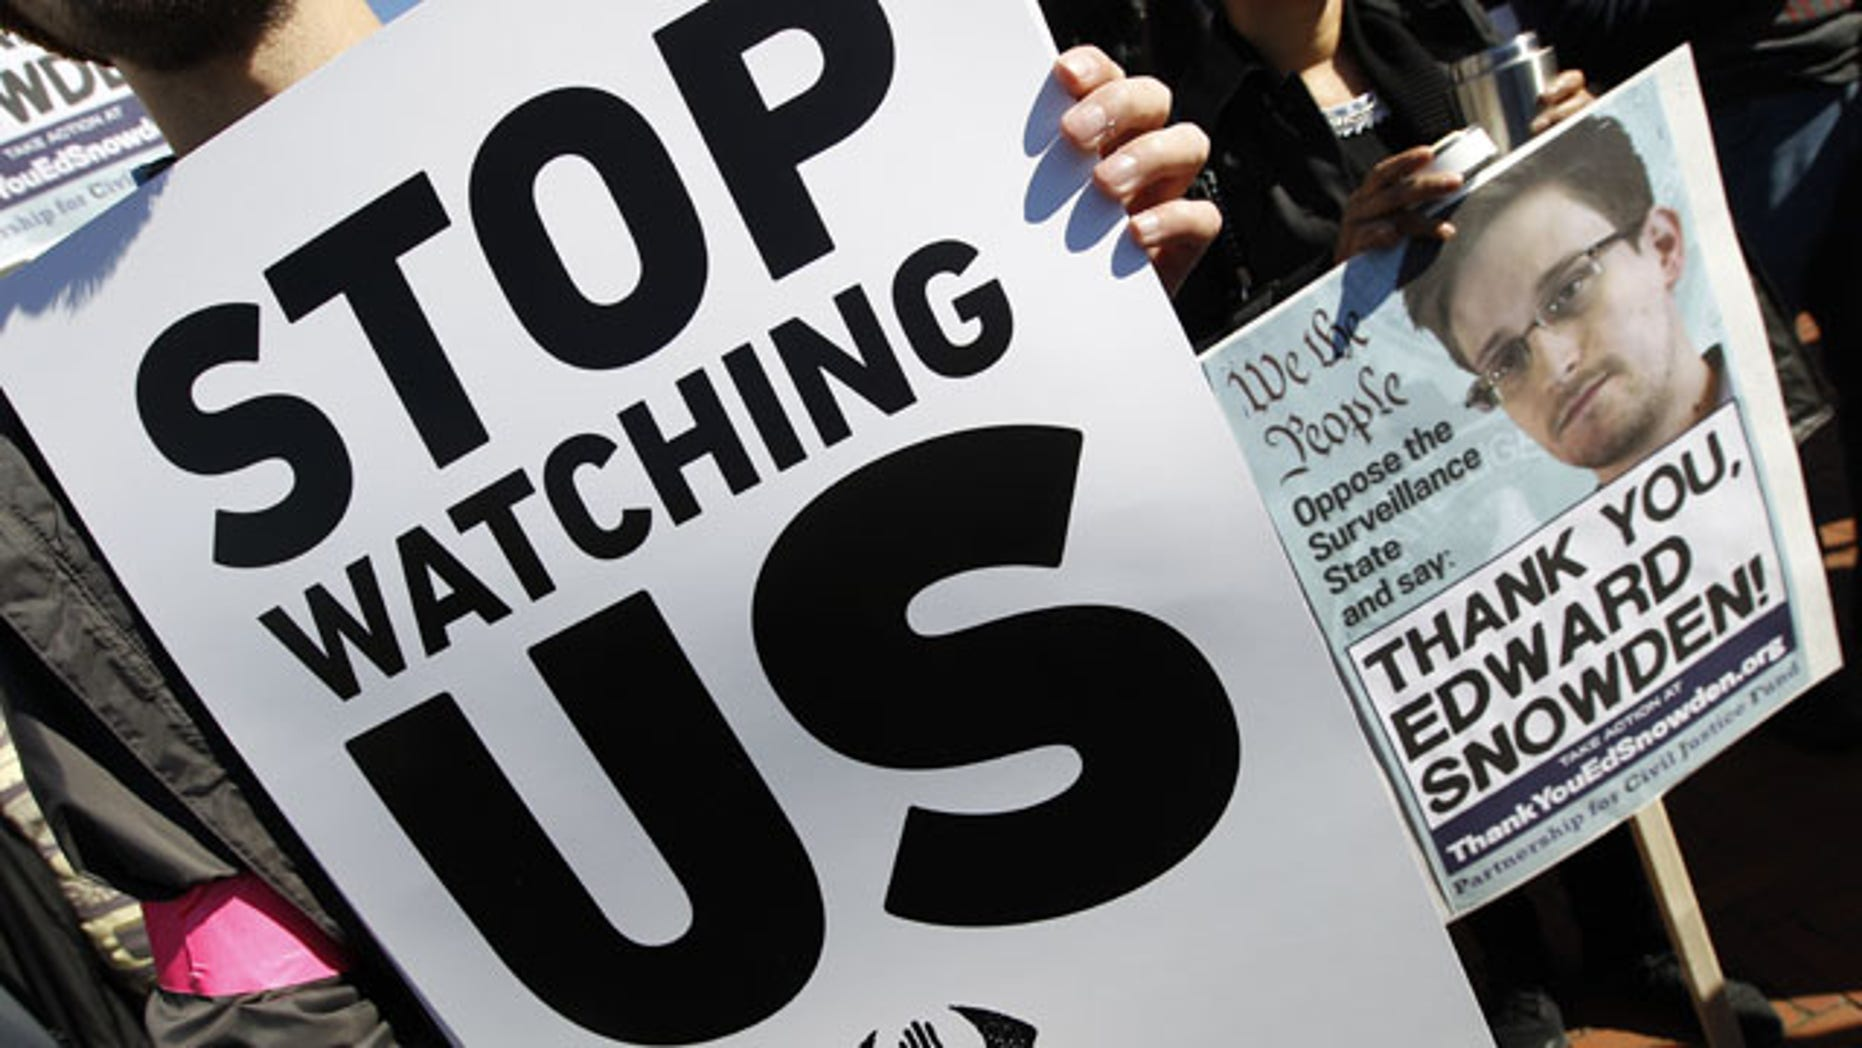 October 26, 2013: Demonstrators protest outside of the U.S. Capitol in Washington during a rally to demand that the U.S. Congress investigate the National Security Agency's mass surveillance programs. (AP Photo/Jose Luis Magana)